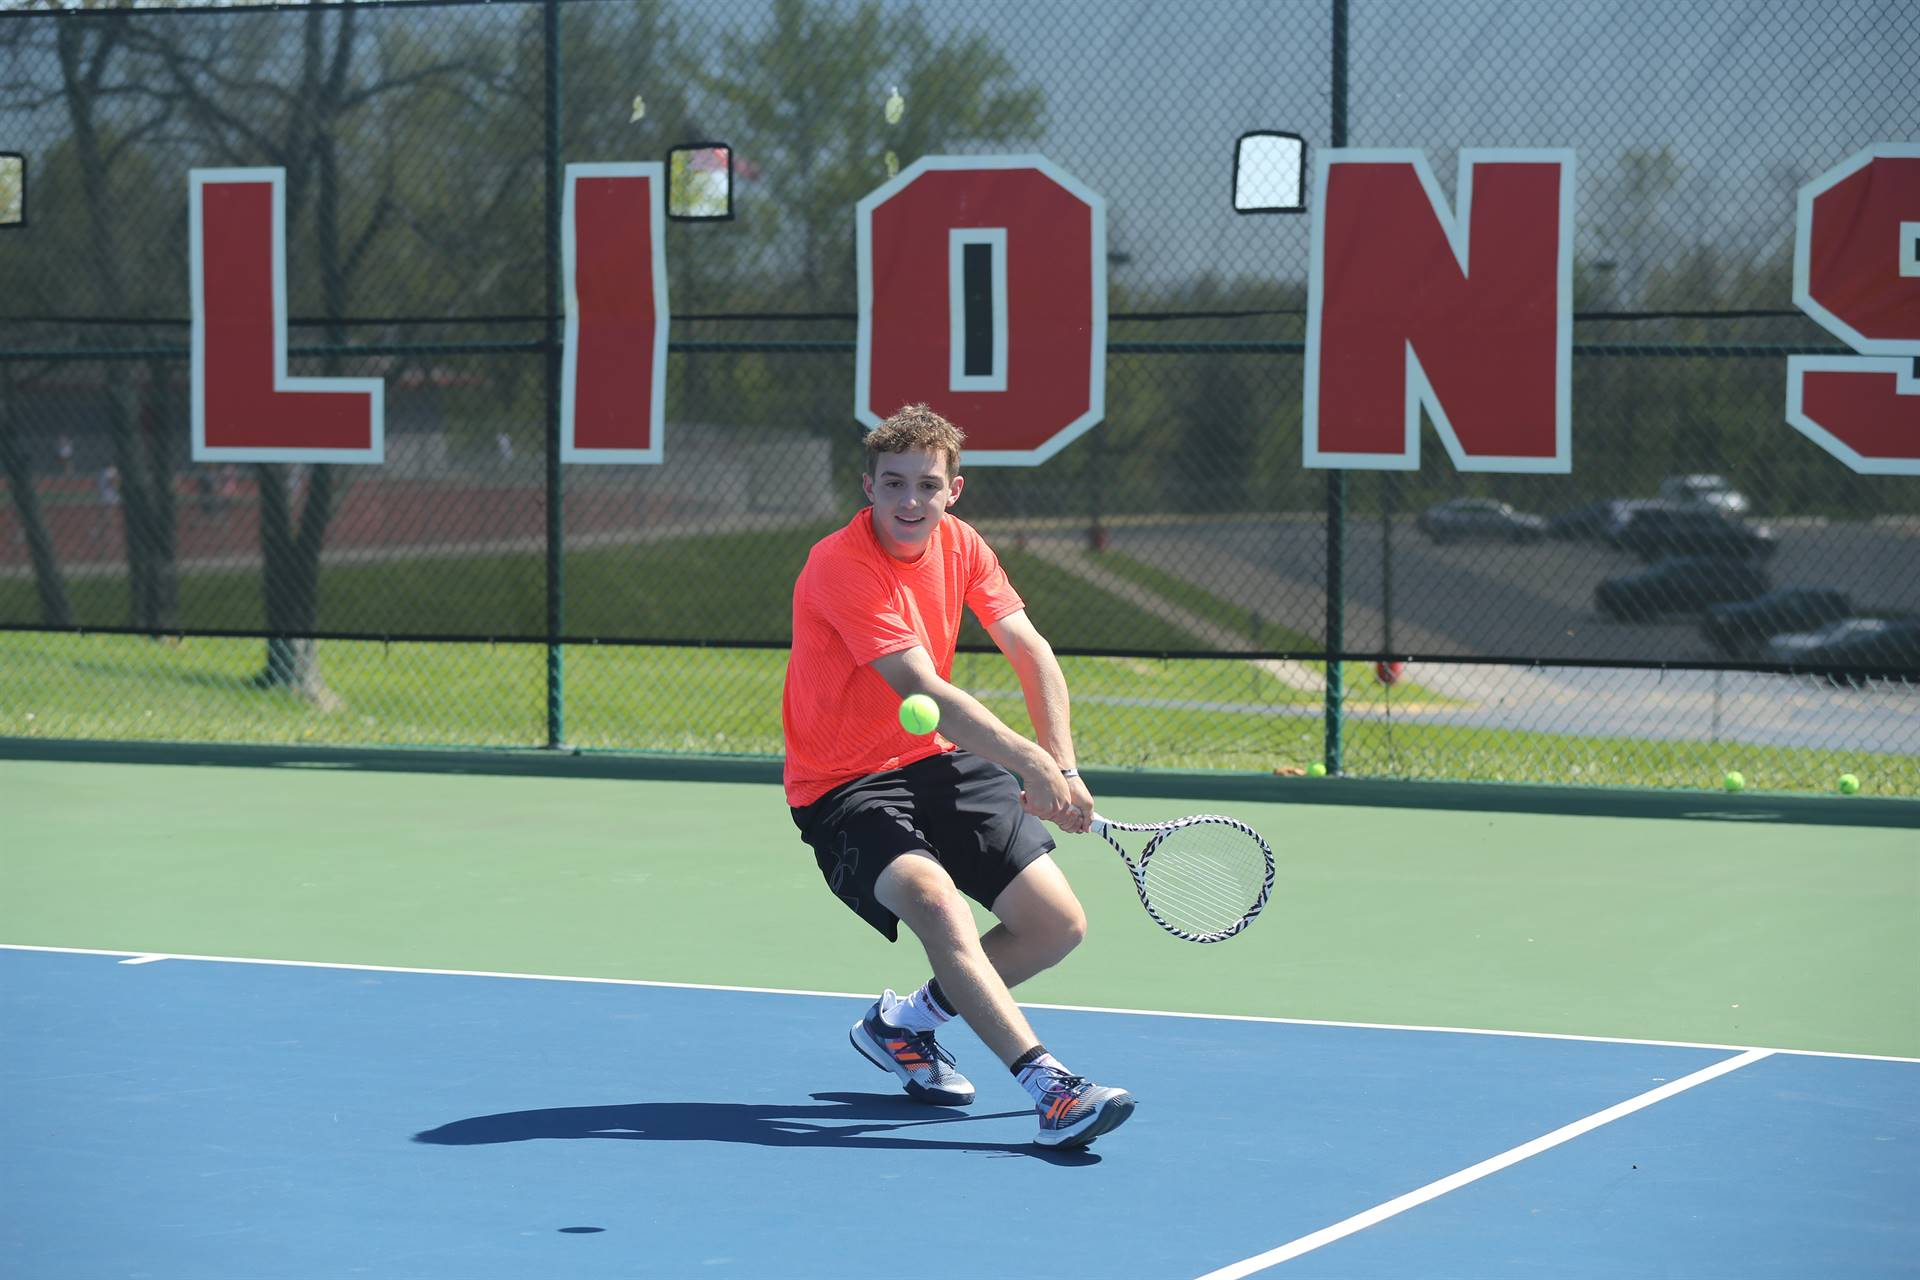 boys tennis player about to hit ball